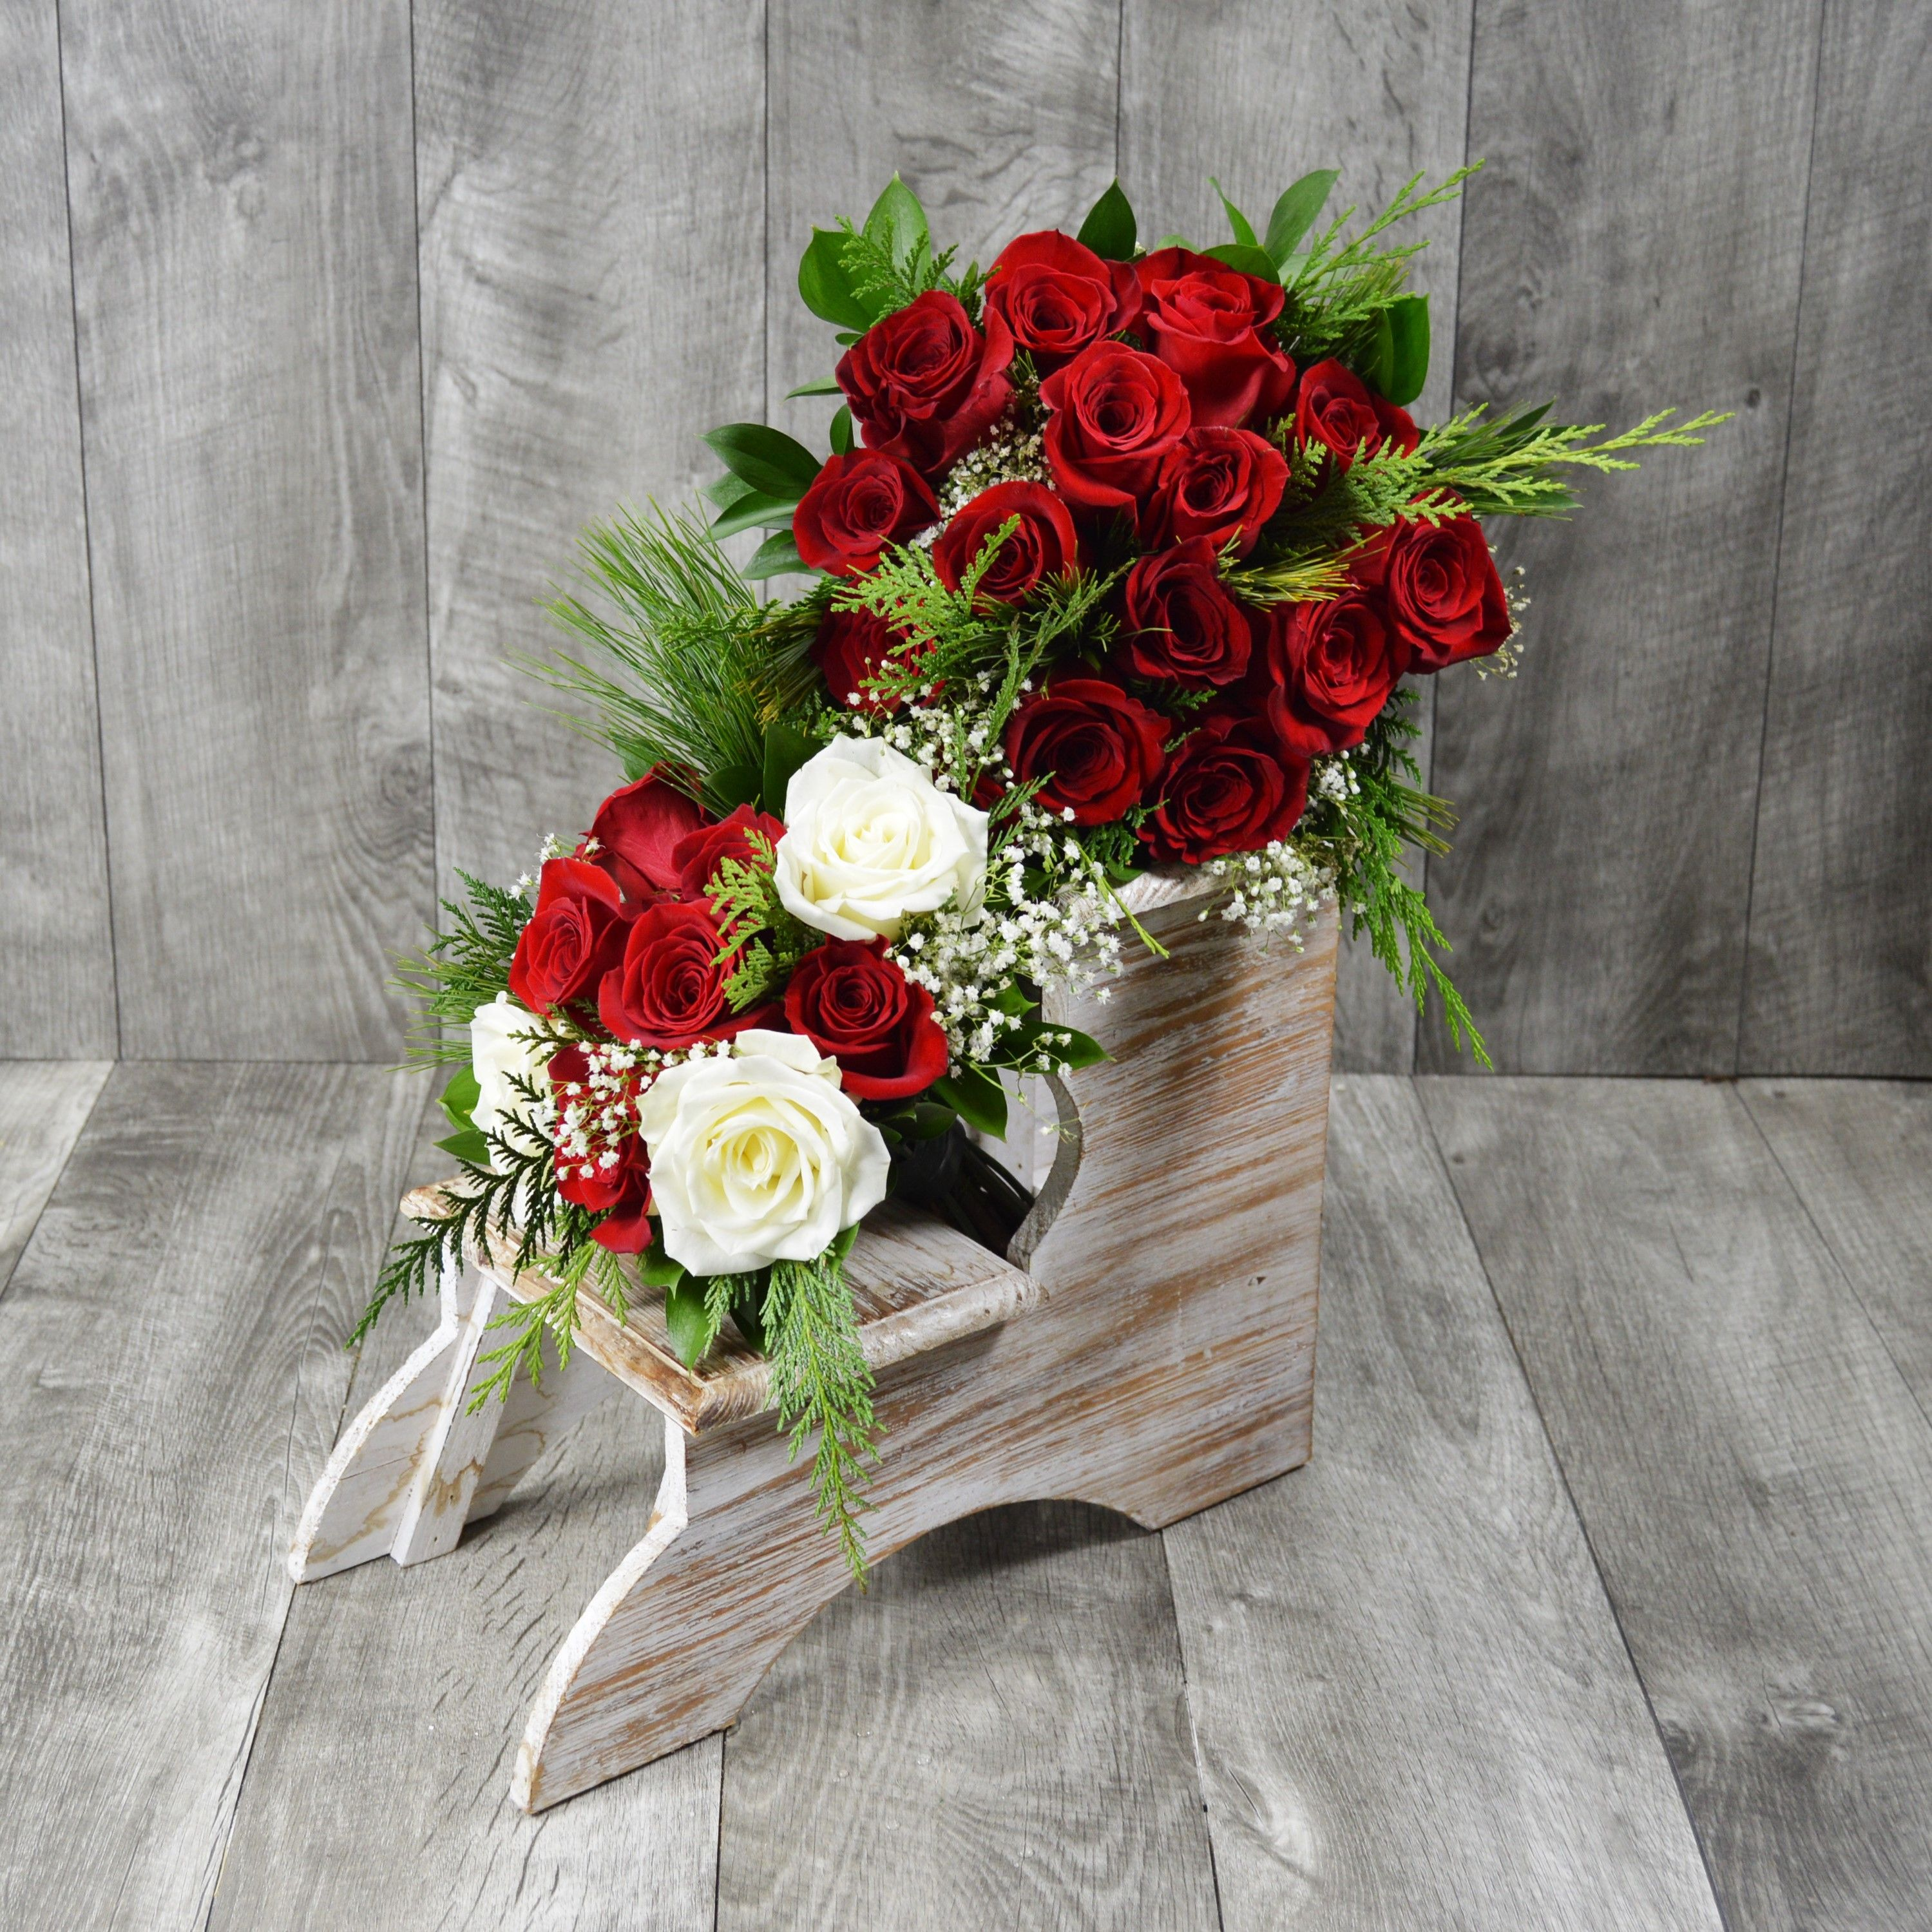 Winter weddings mean red and white roses paired